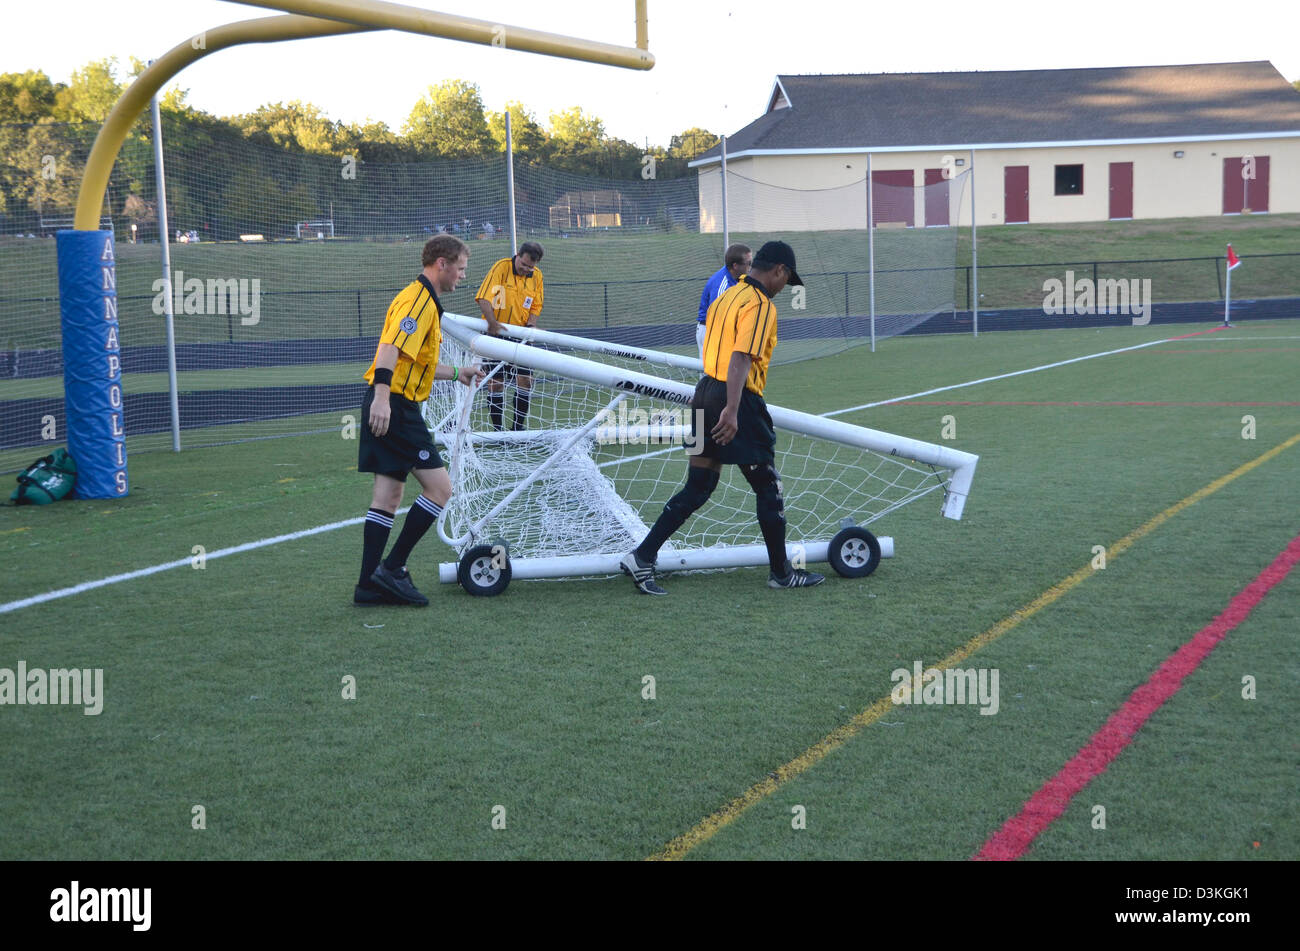 Officials remove a broken net during a lacrosse game - Stock Image